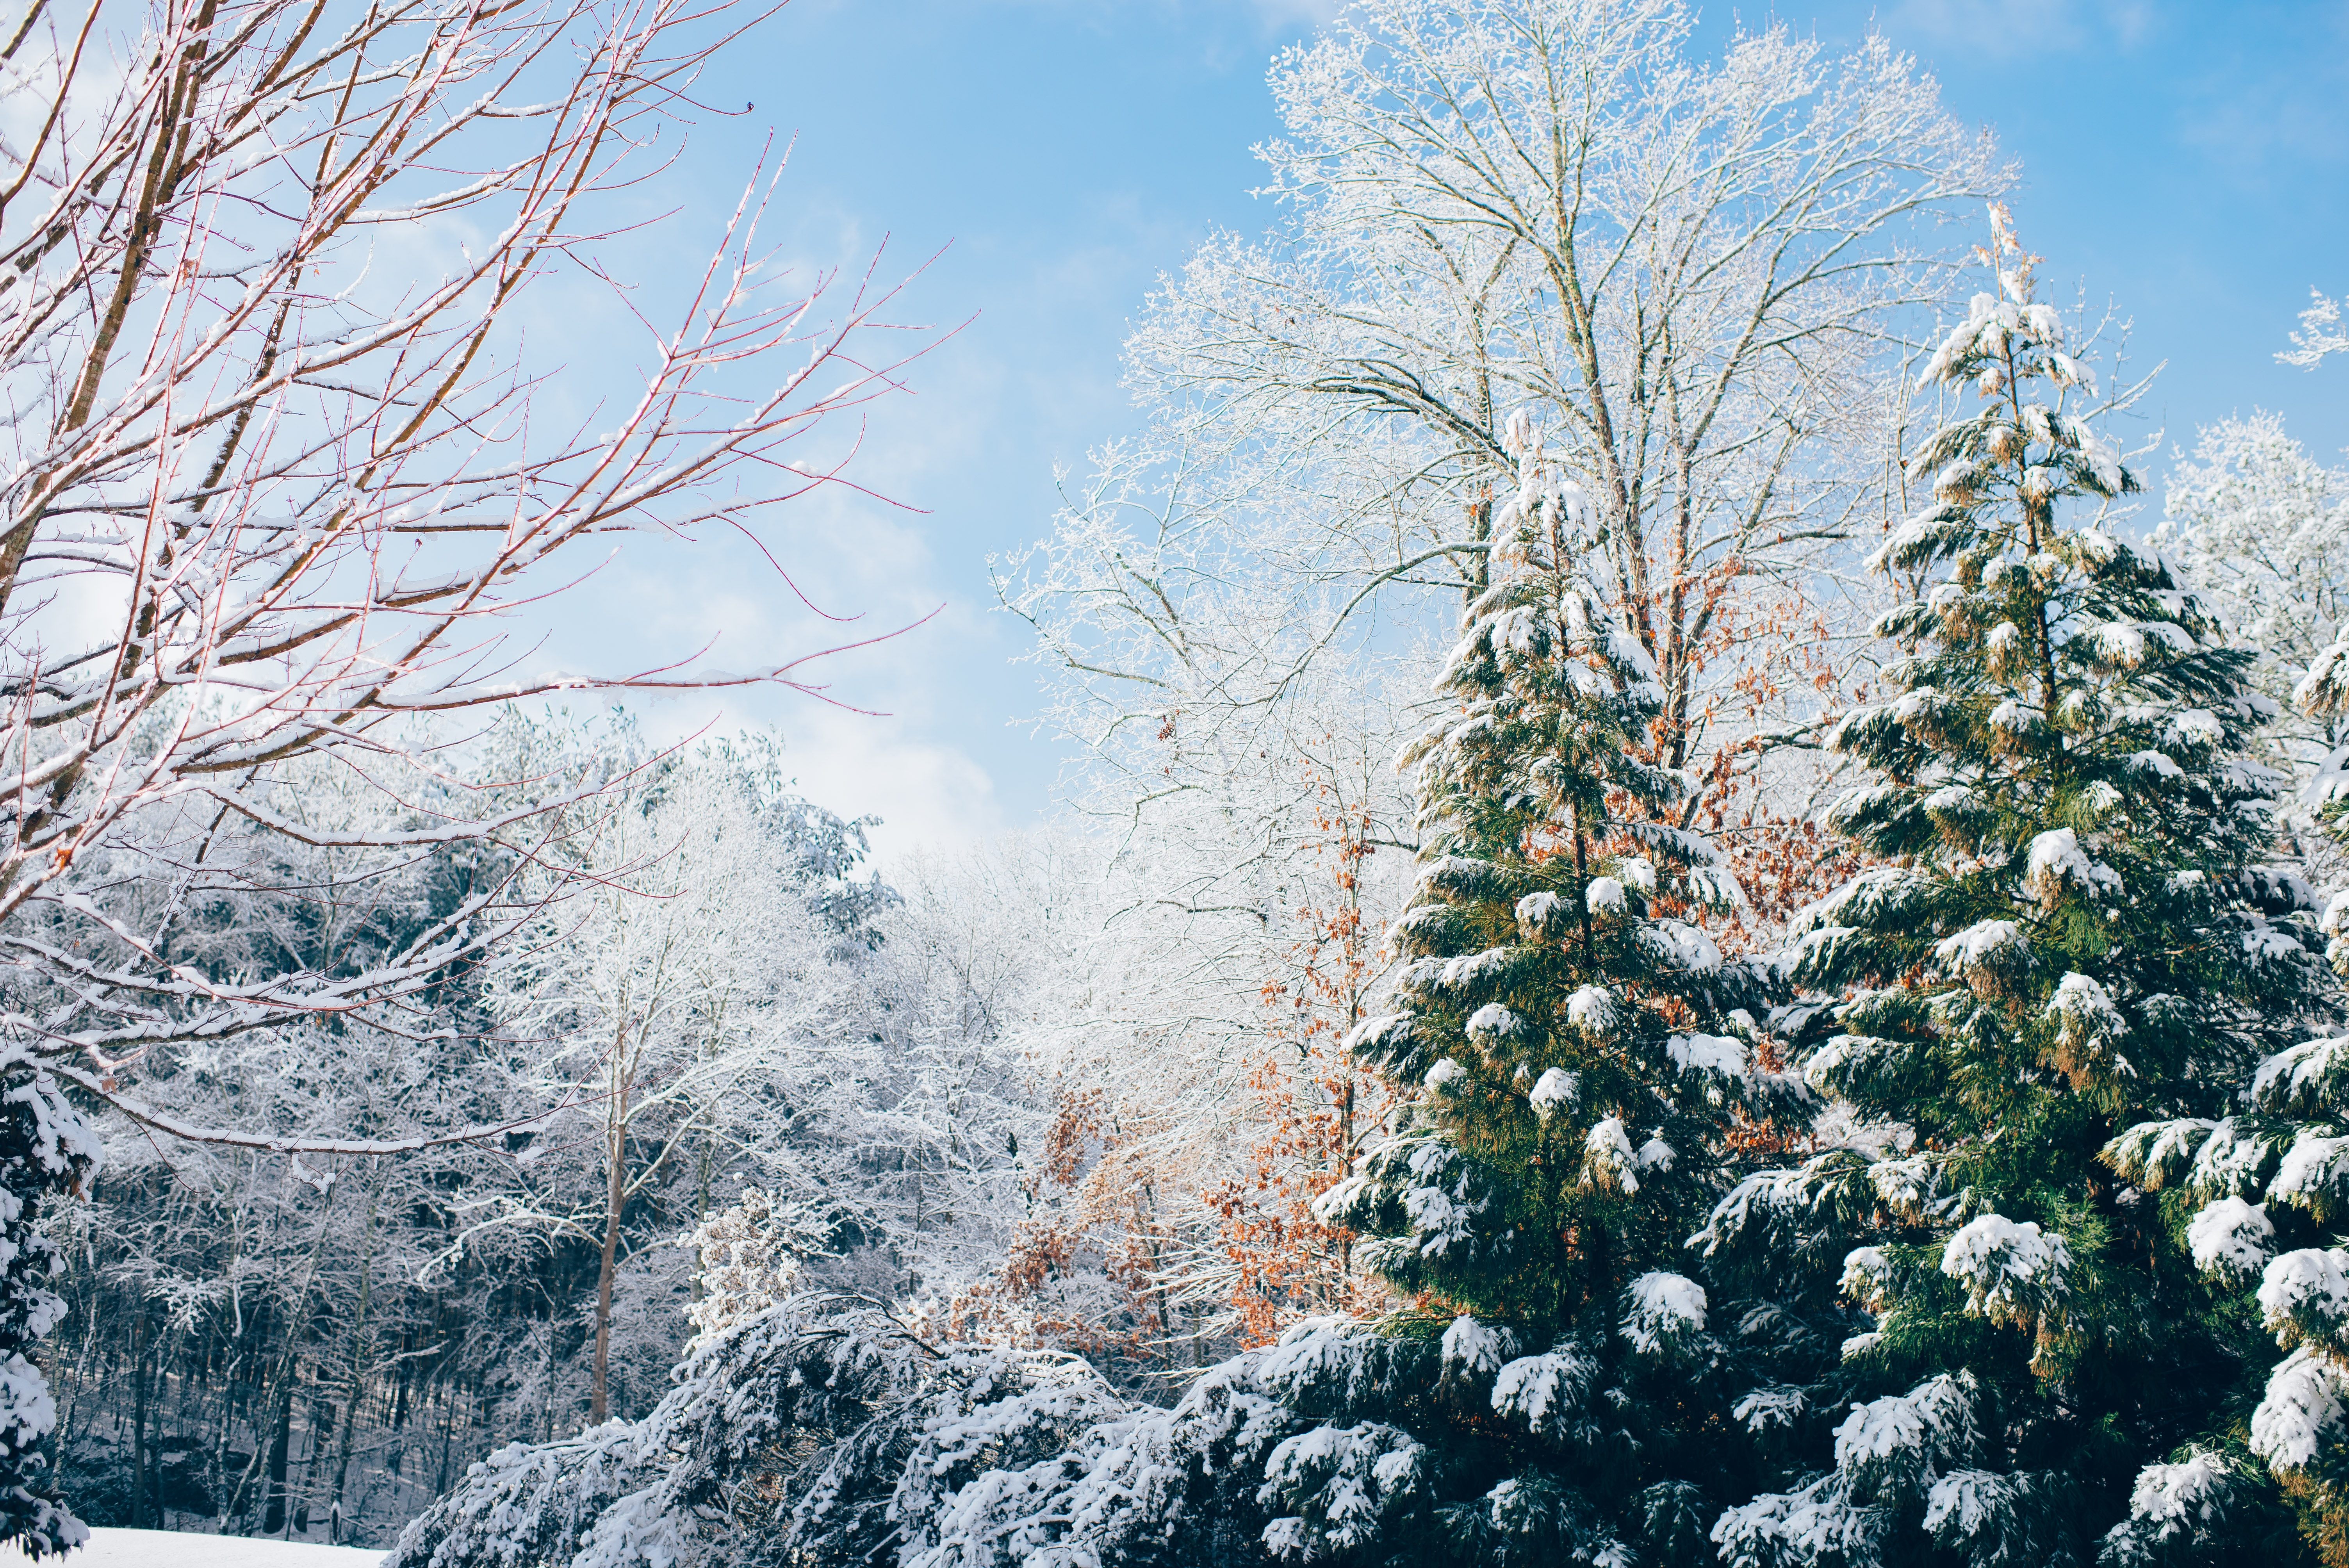 green pine trees during snow season